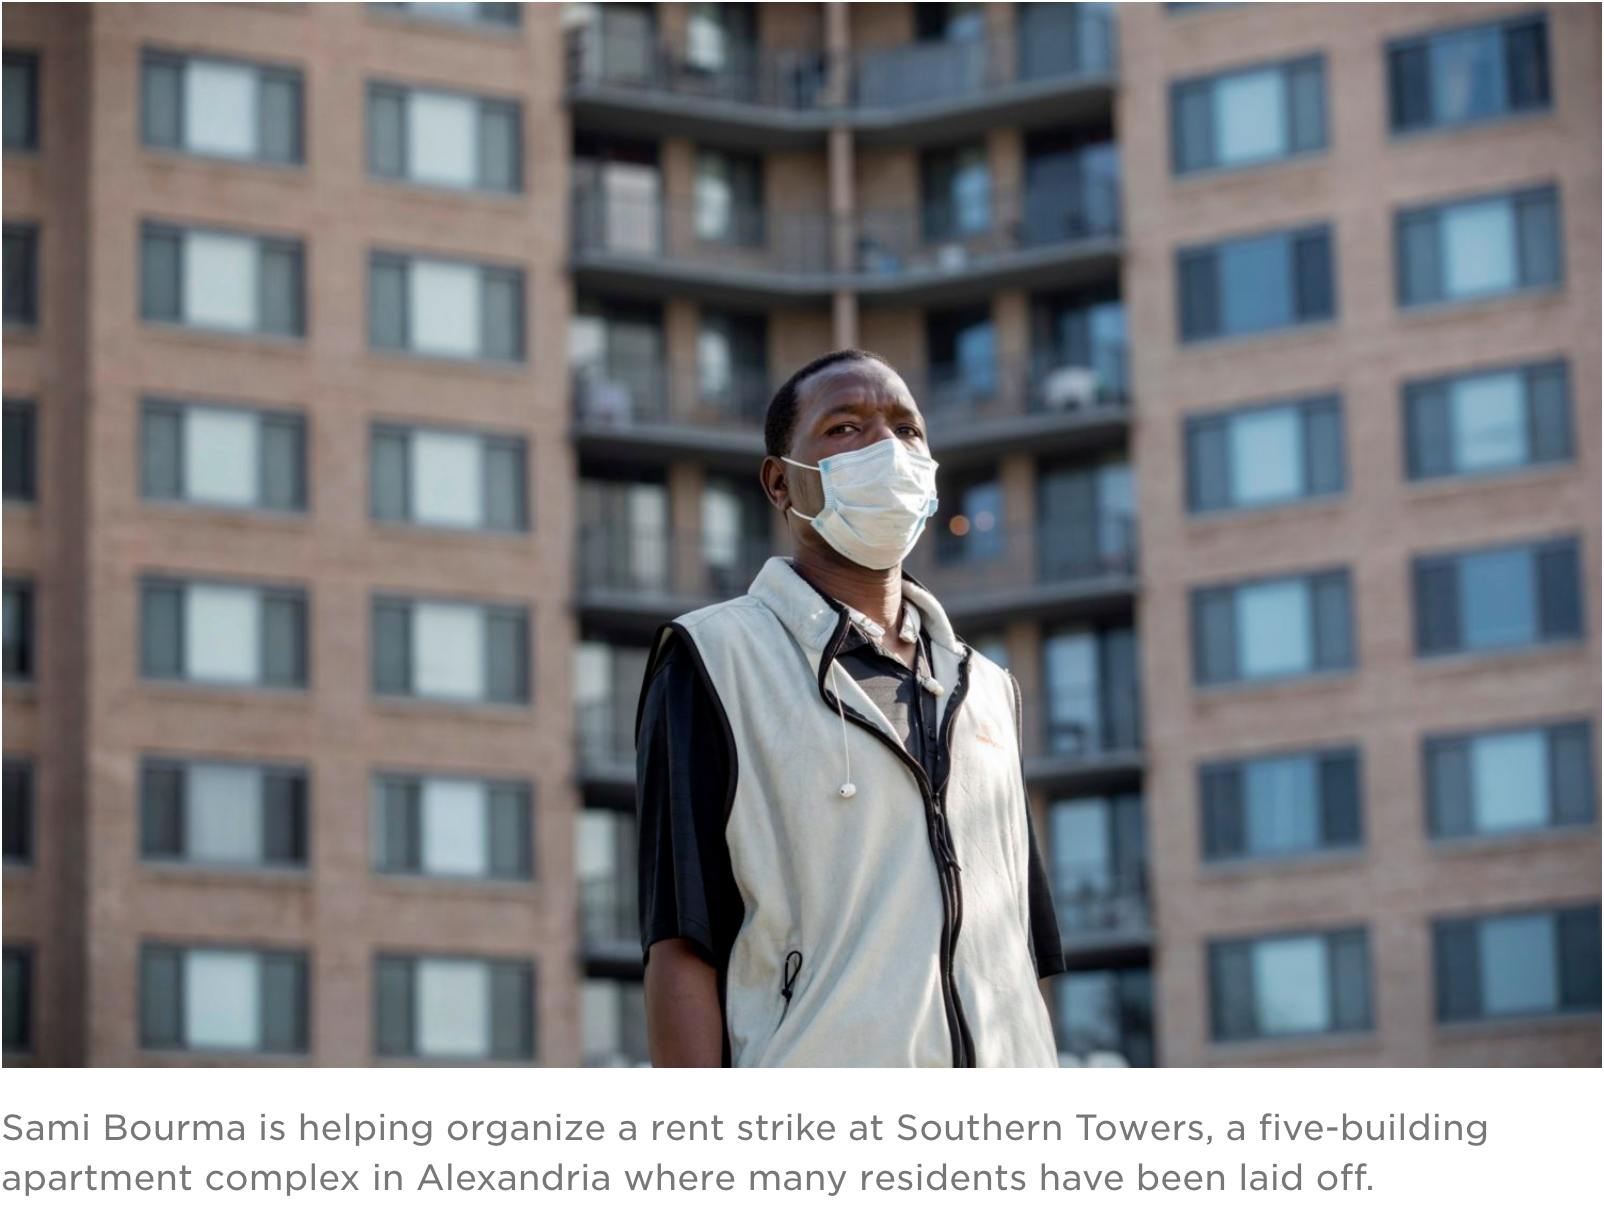 Sami Bourma is helping organizing a rent strike at Southern Towers, a five-building apartment complex in Alexandria where many residents have been laid off.